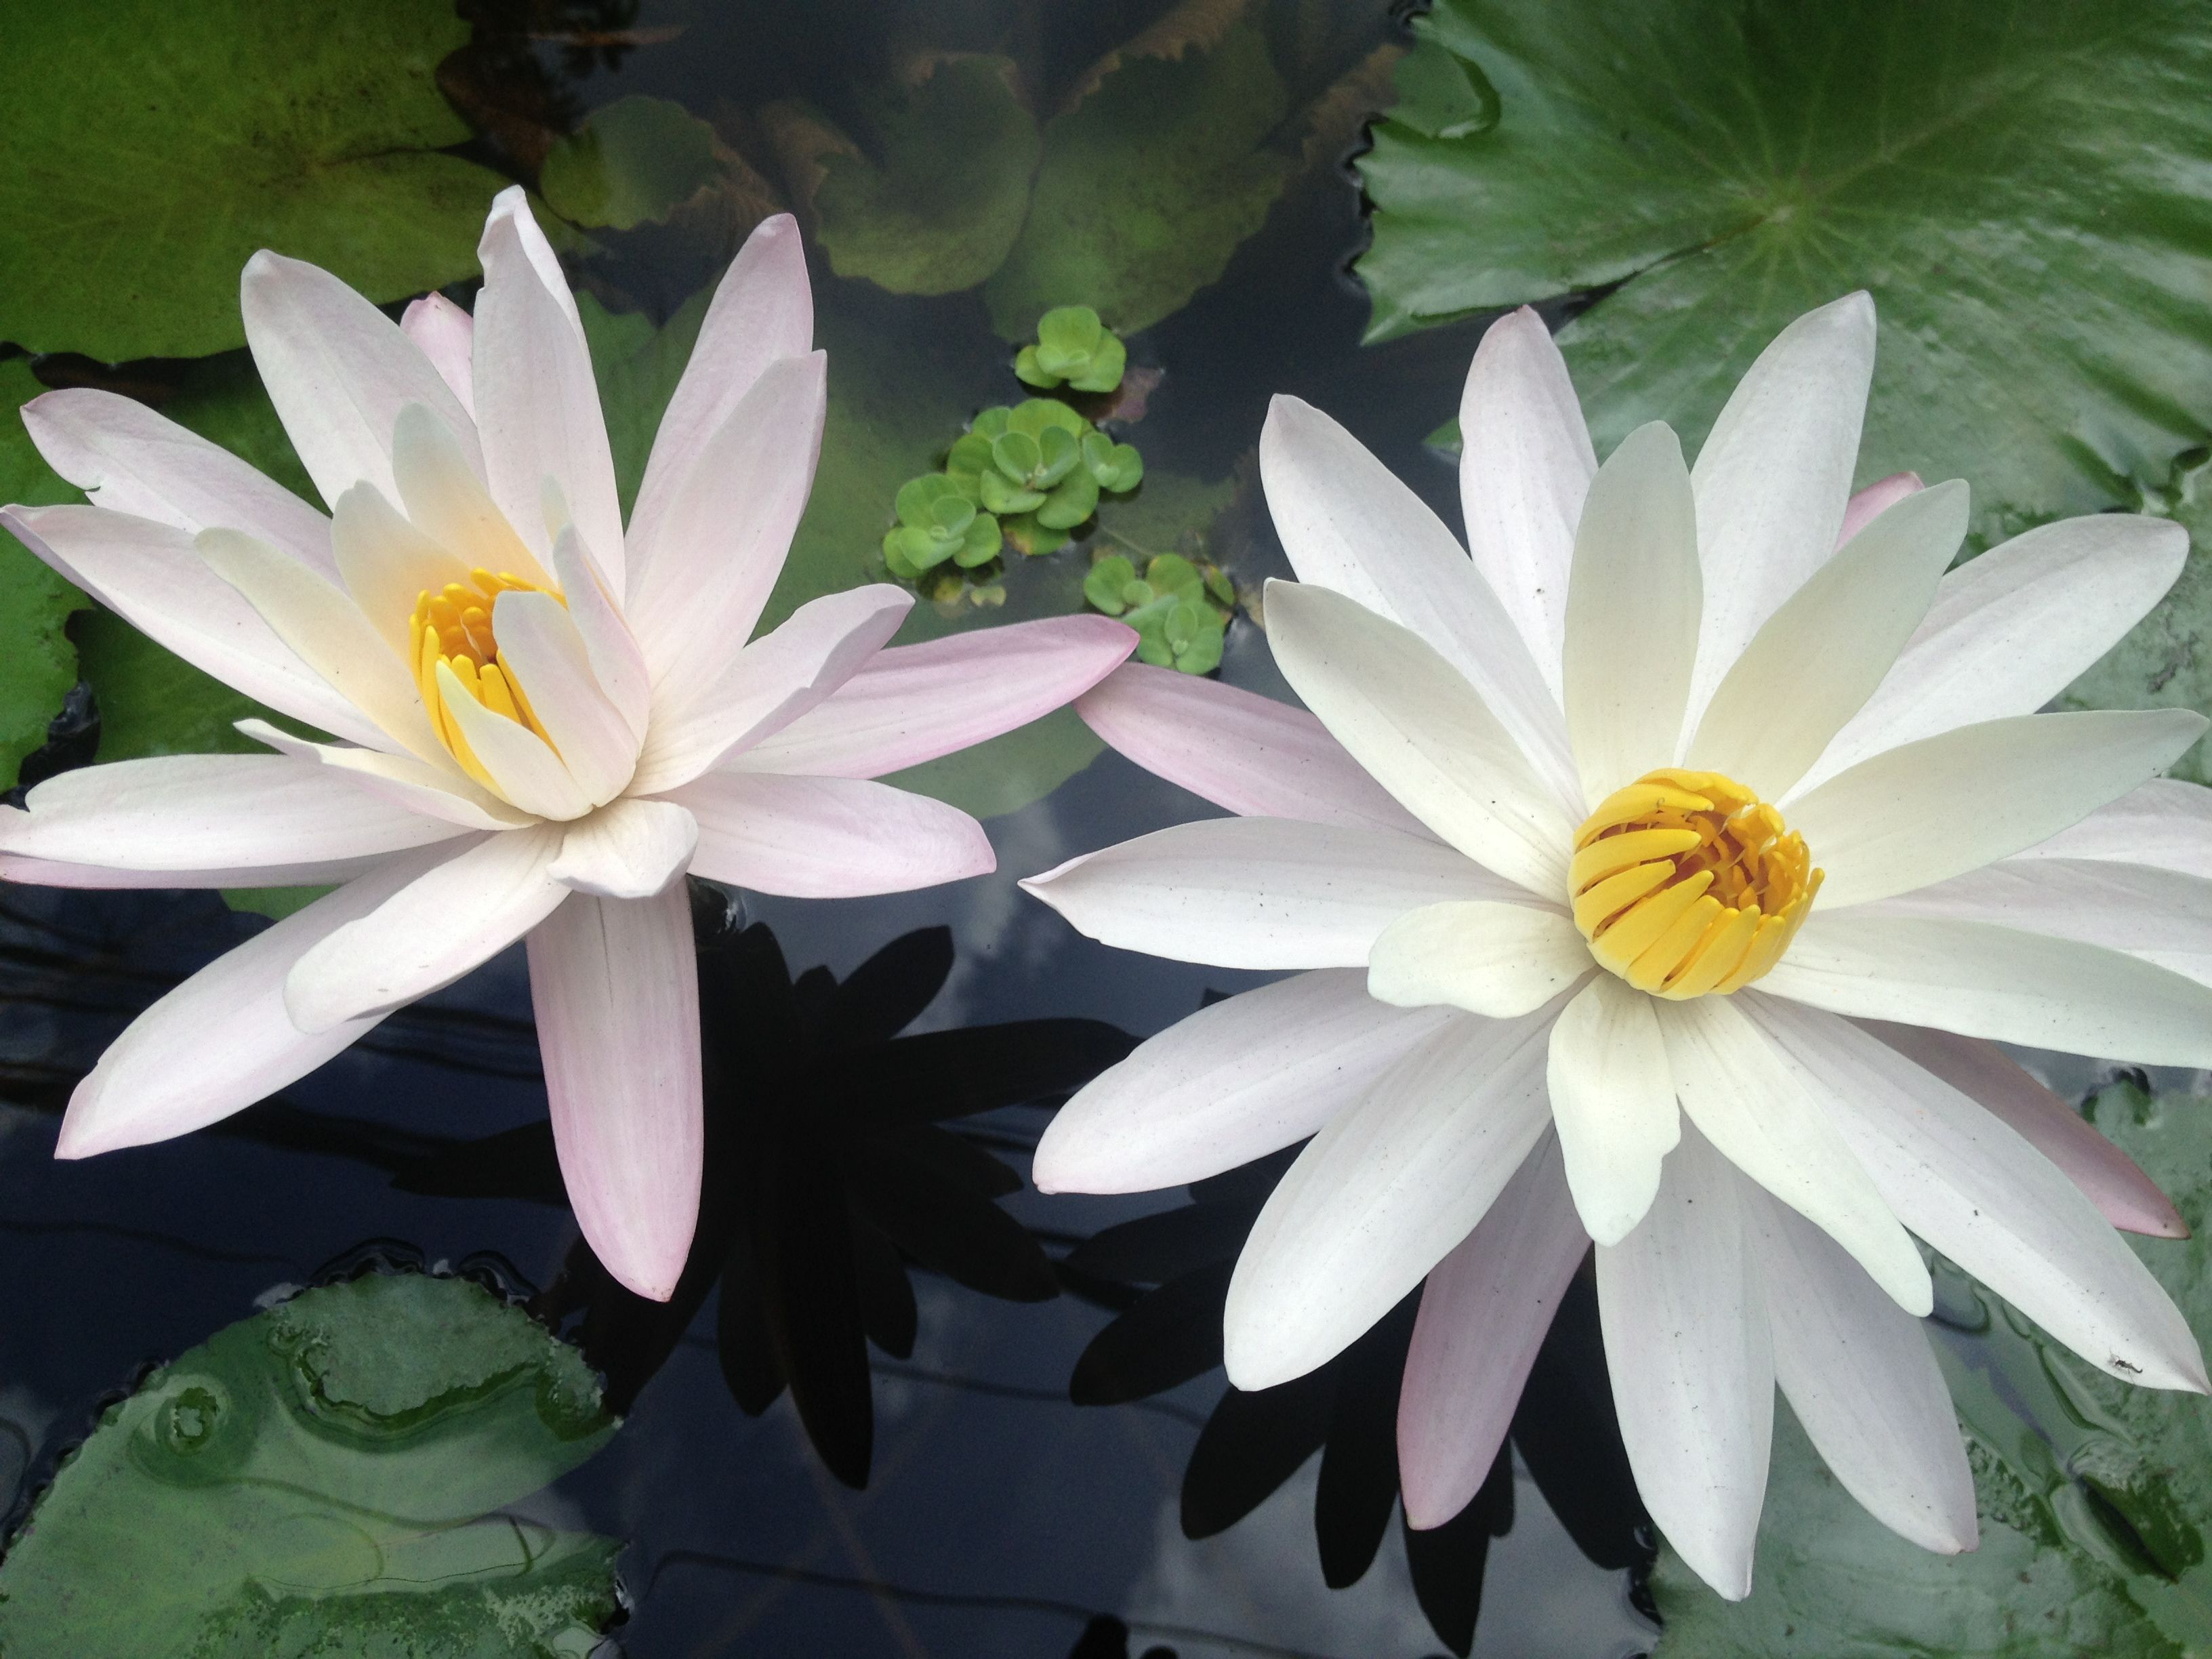 beautiful water lilies in a pond at the front of a